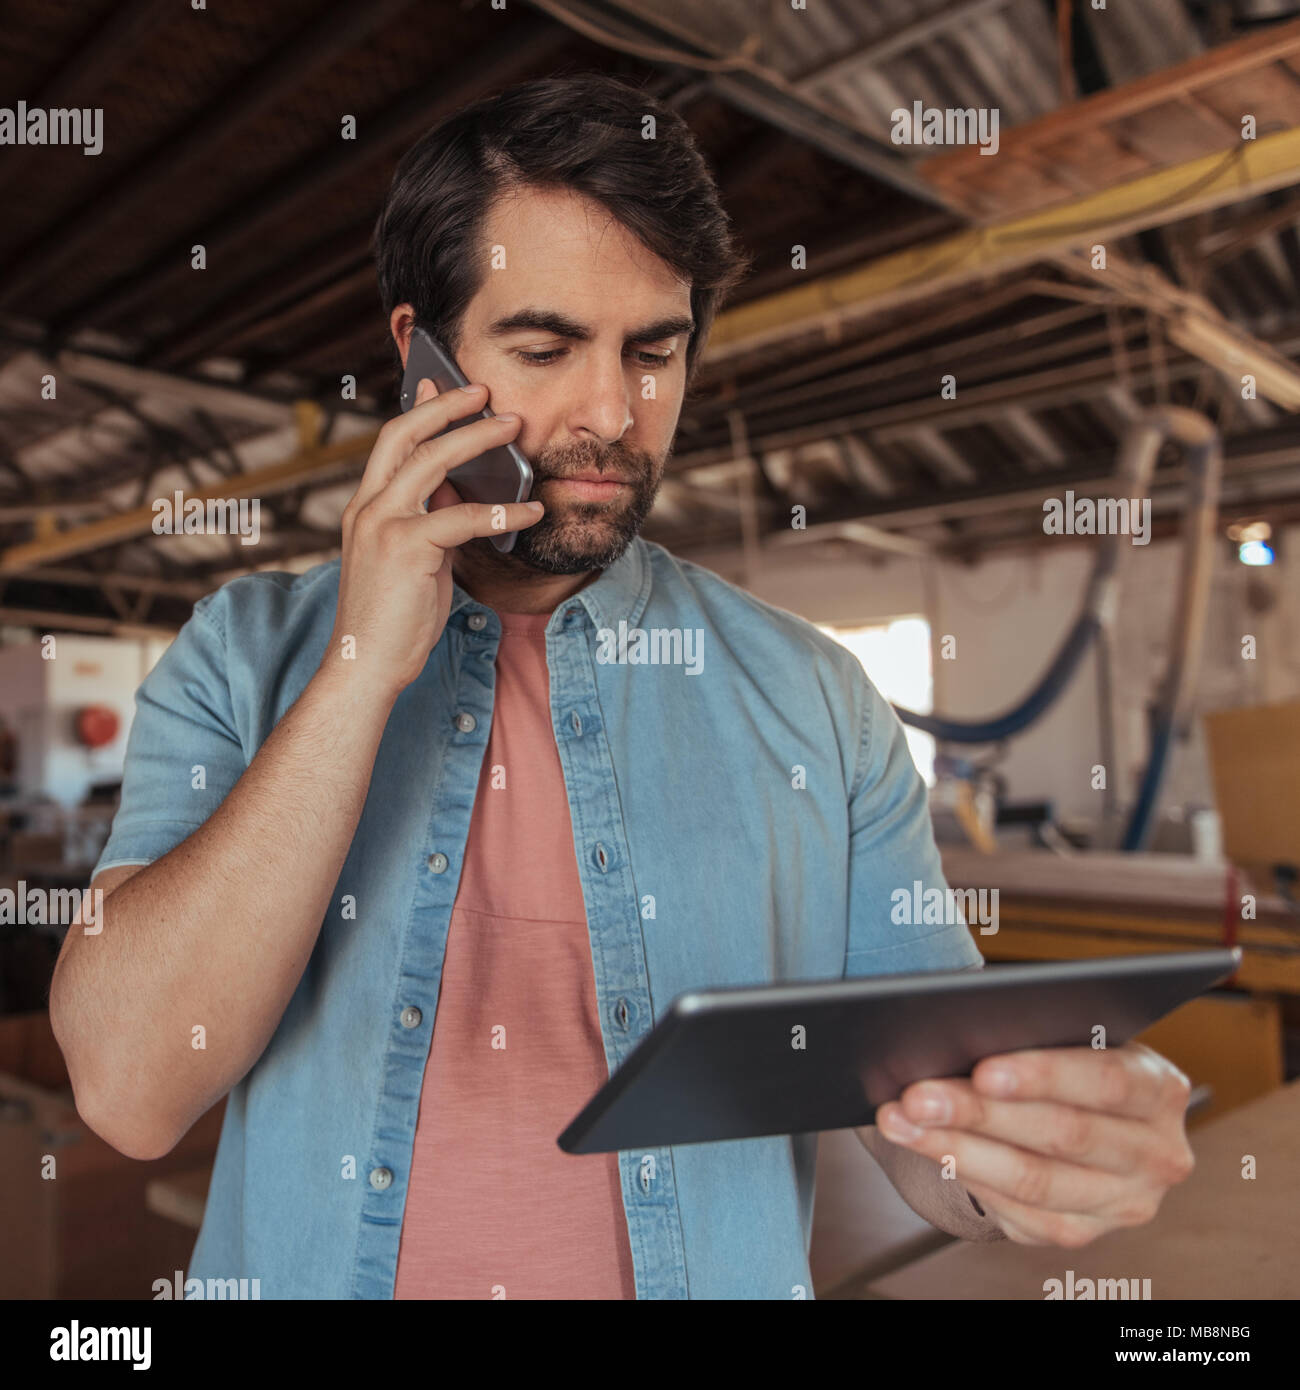 Young woodworker using a phone and tablet in his workshop - Stock Image